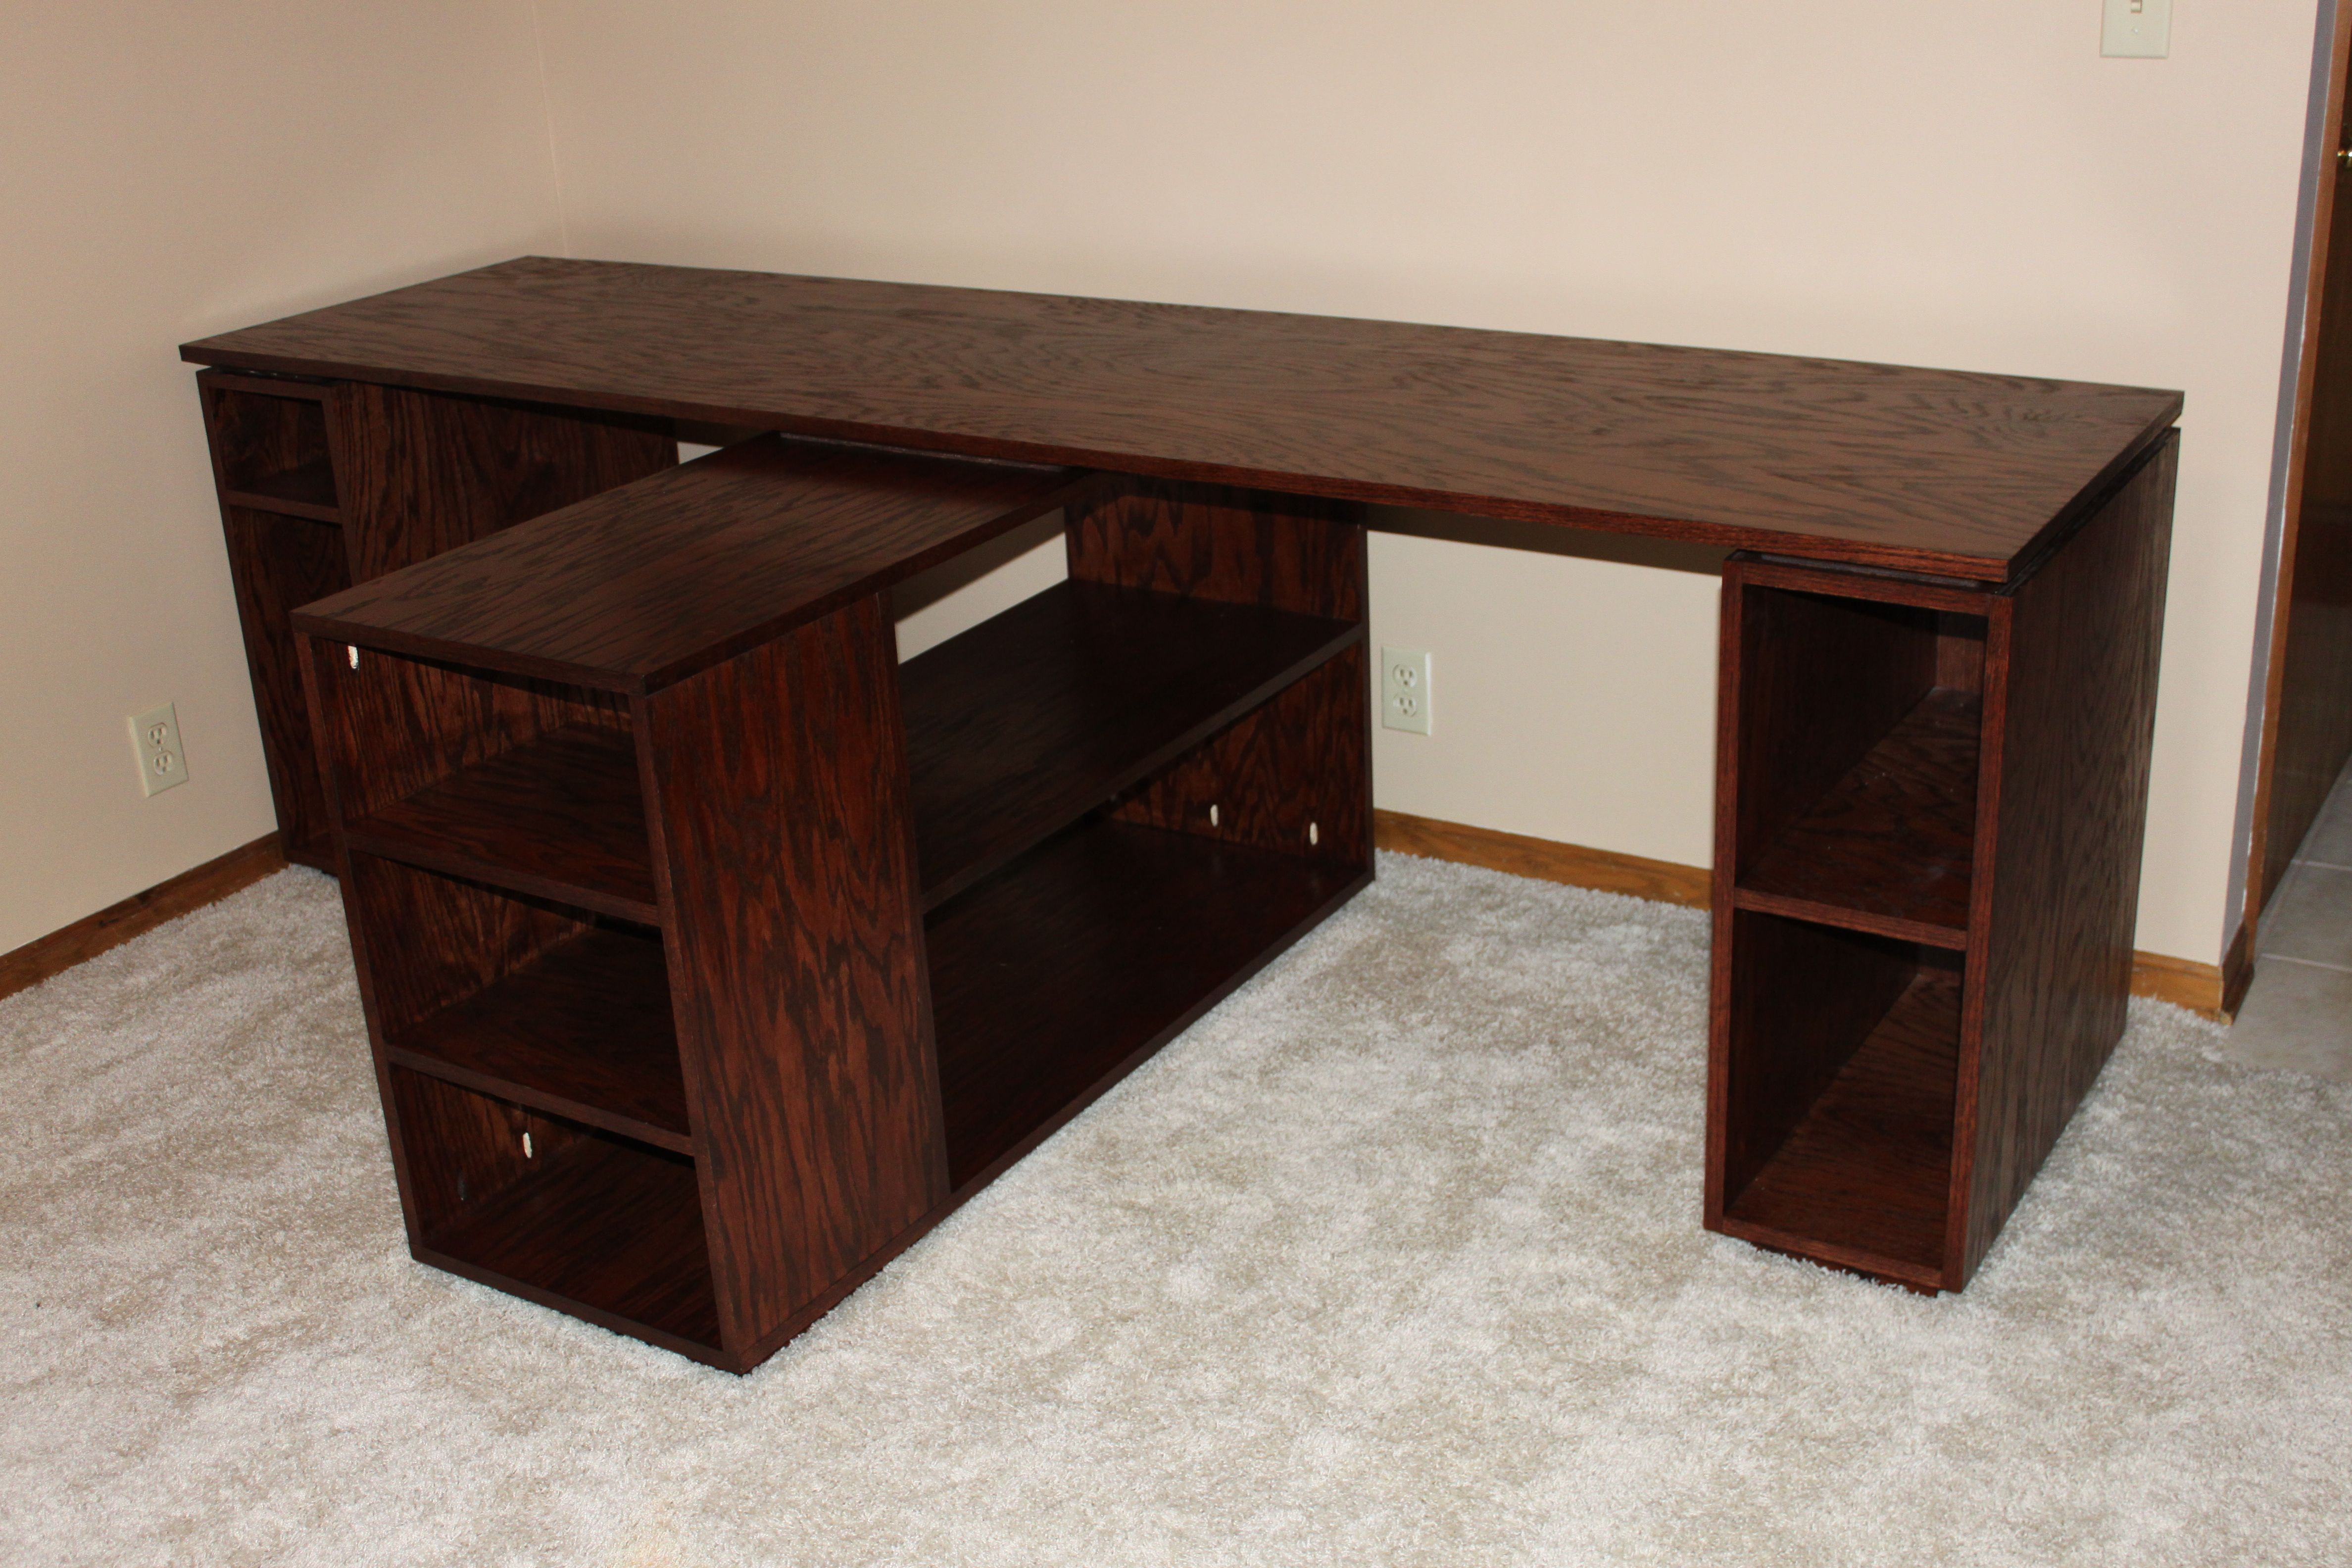 2 person desk do it yourself home projects from ana white 2 person desk diy projects solutioingenieria Image collections